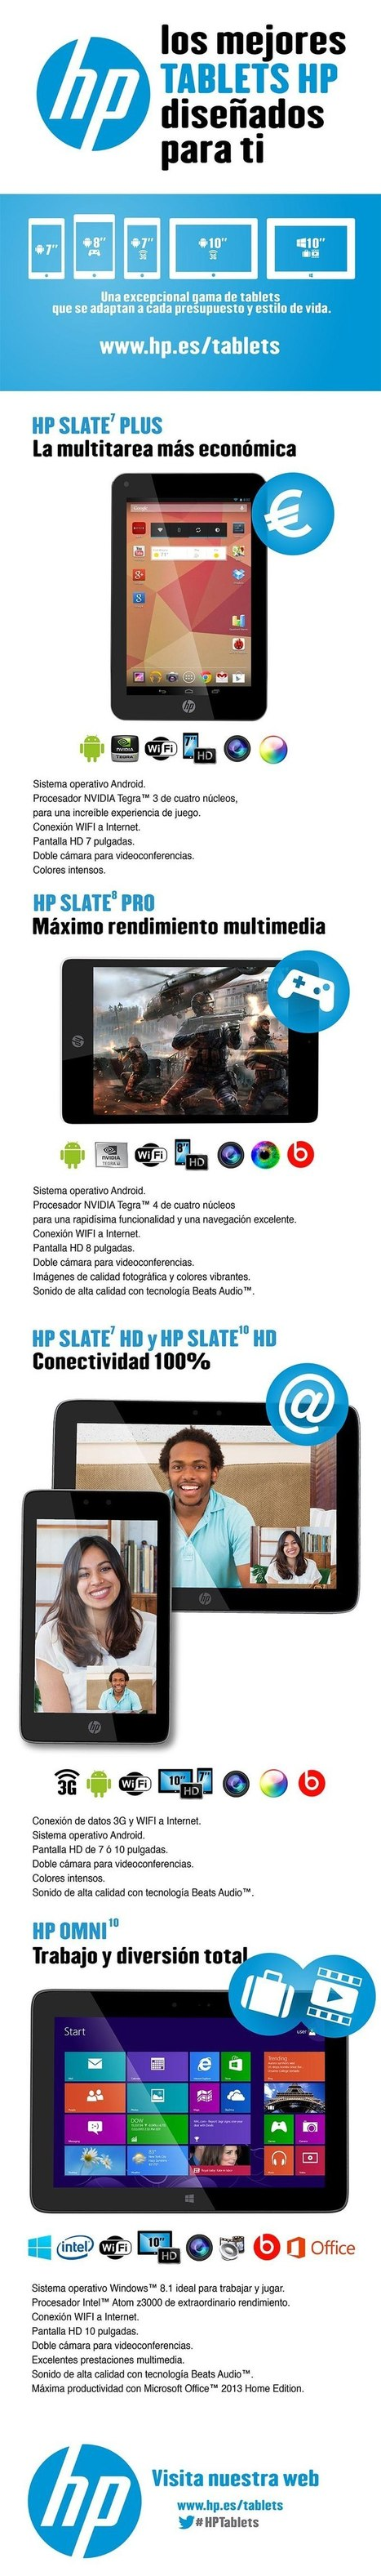 Todas las tablets de HP de un vistazo | #Apps #Softwares & #Gadgets | Scoop.it